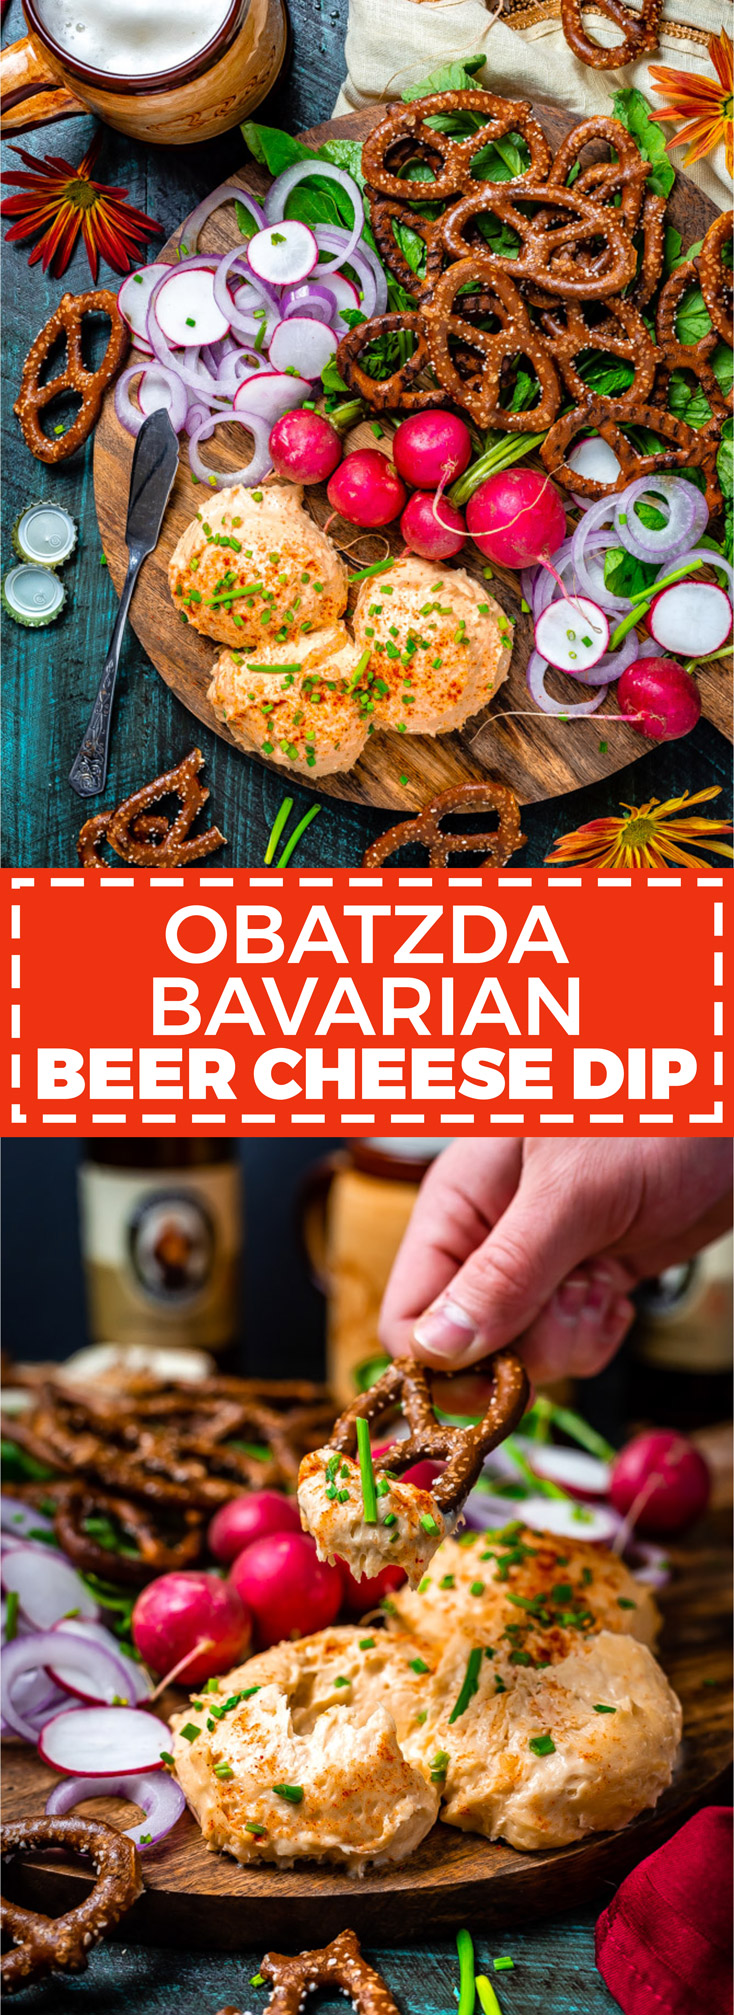 Obatzda Bavarian Beer Cheese Dip. This rich and piquant beer garden classic is made with just a few simple ingredients and is perfect to serve with pretzels or rye bread. | hostthetoast.com